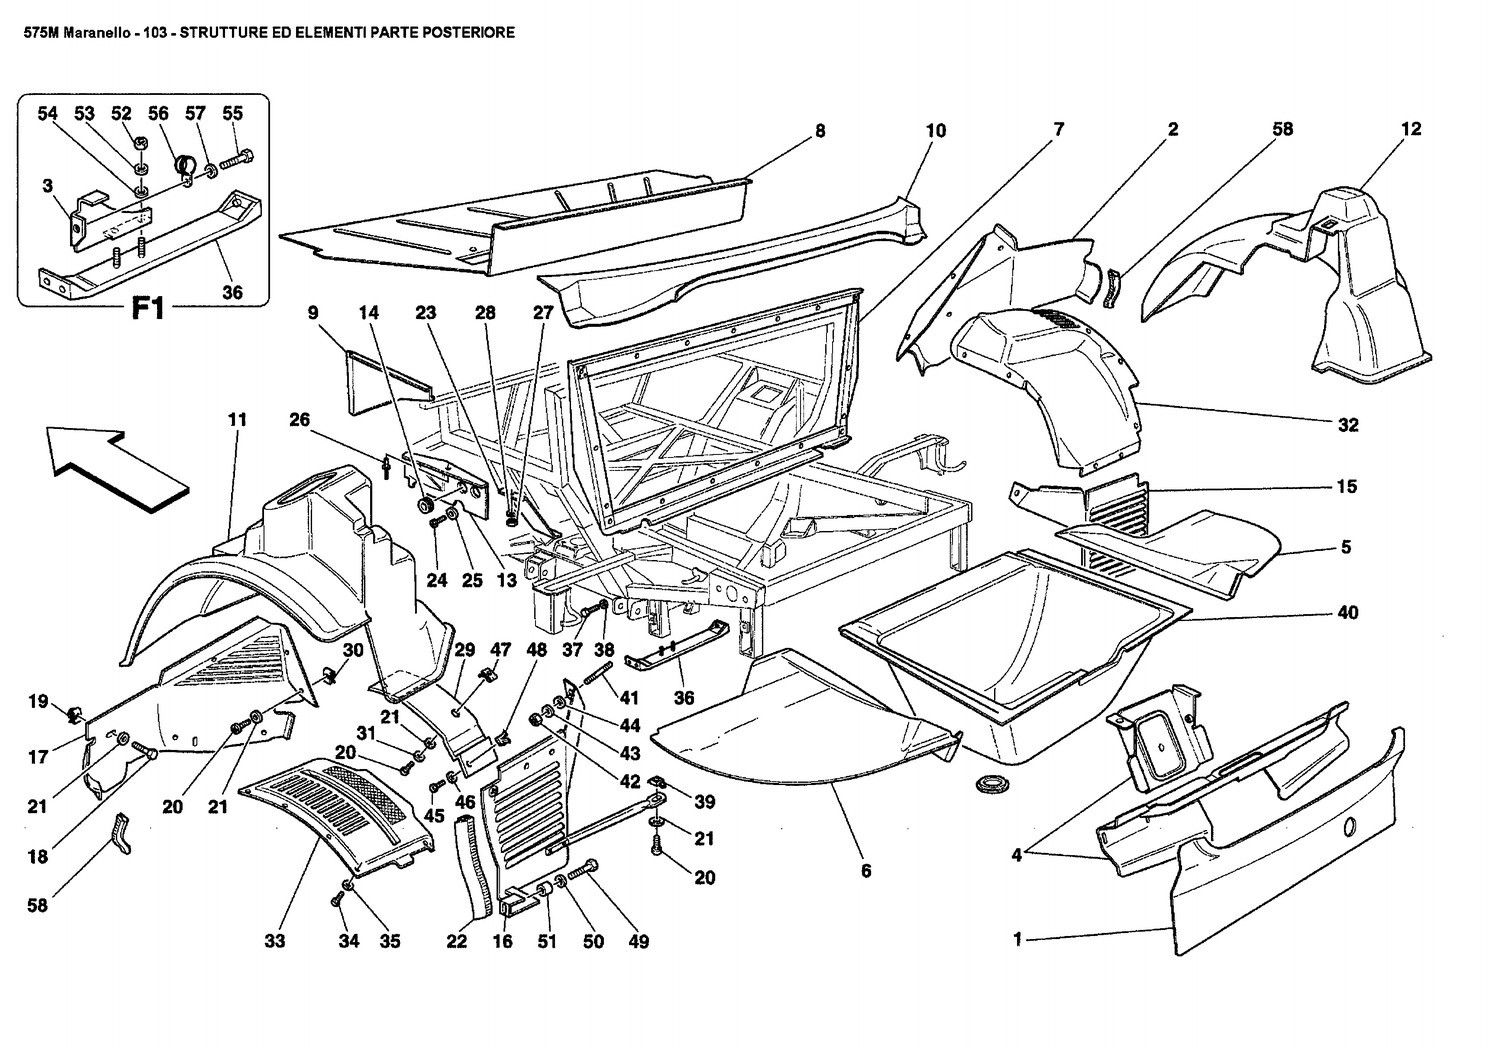 REAR STRUCTURES AND COMPONENTS